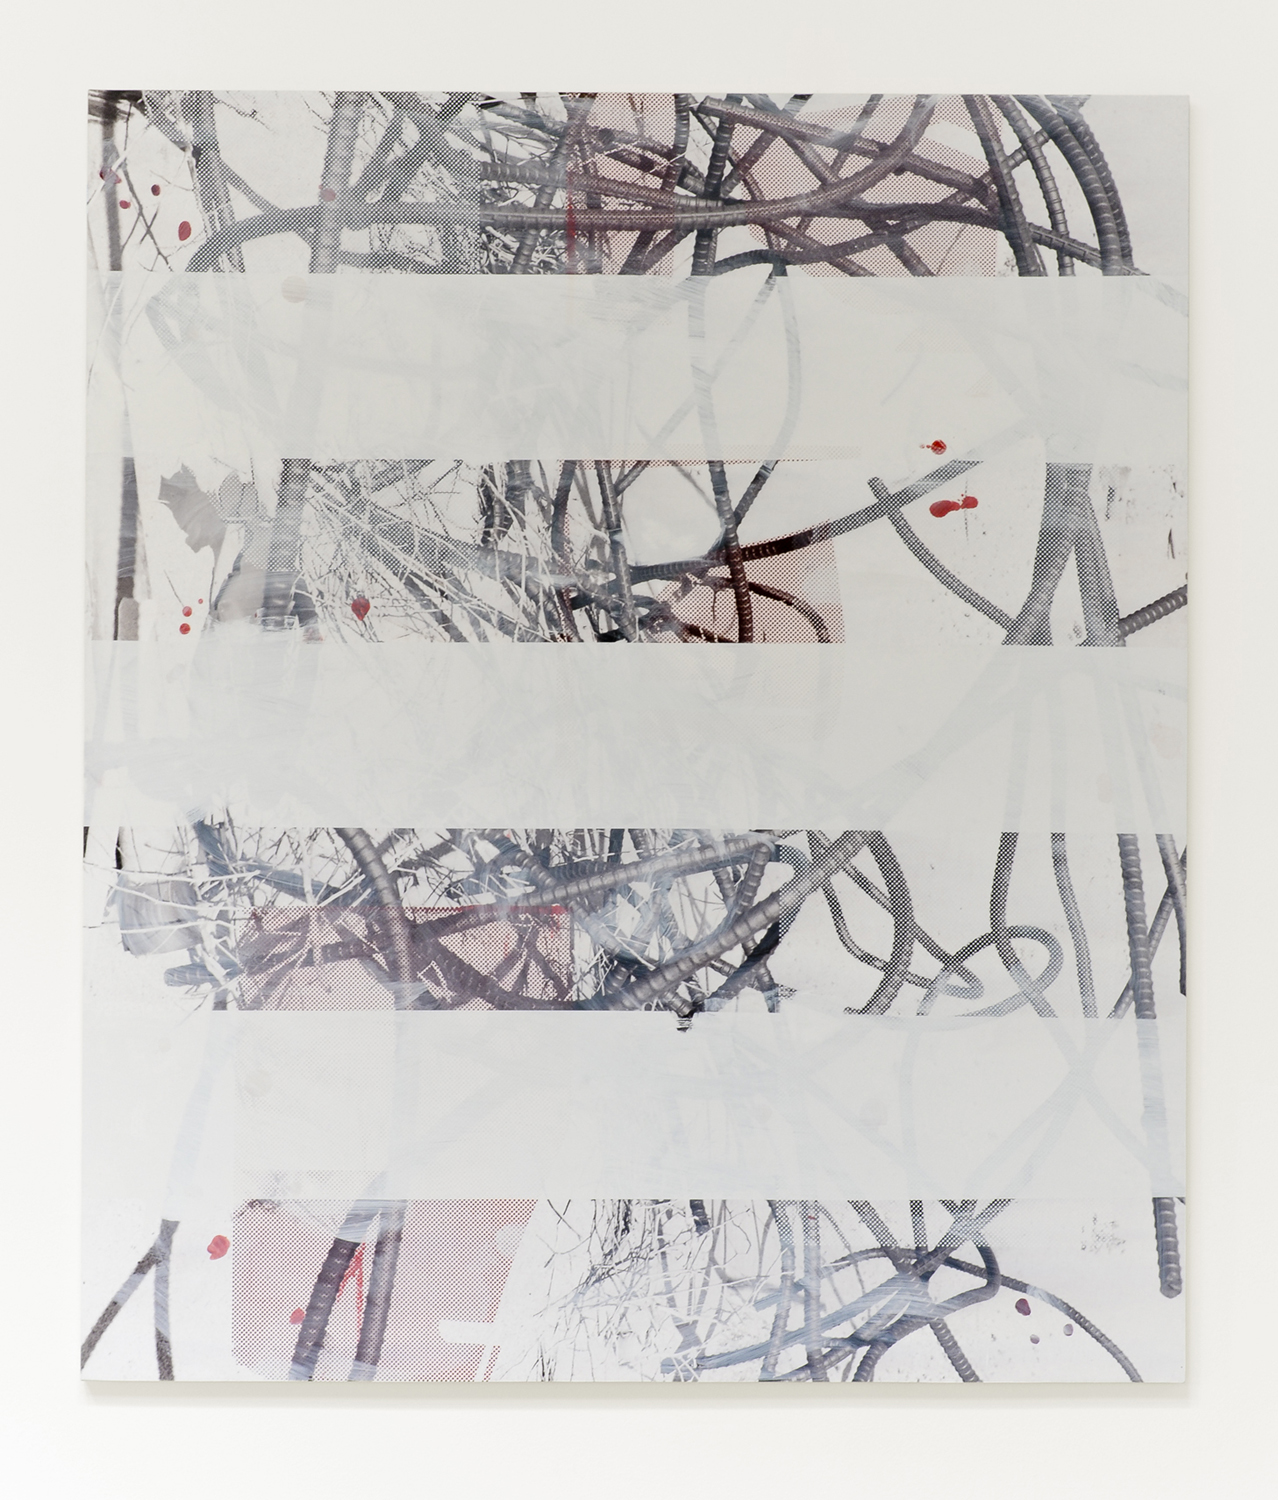 Untitled (rebar 3), 2013  Acrylic, oil and UV cured ink on canvas over panel  84 x 72 inches  213.36 x 182.88 cm